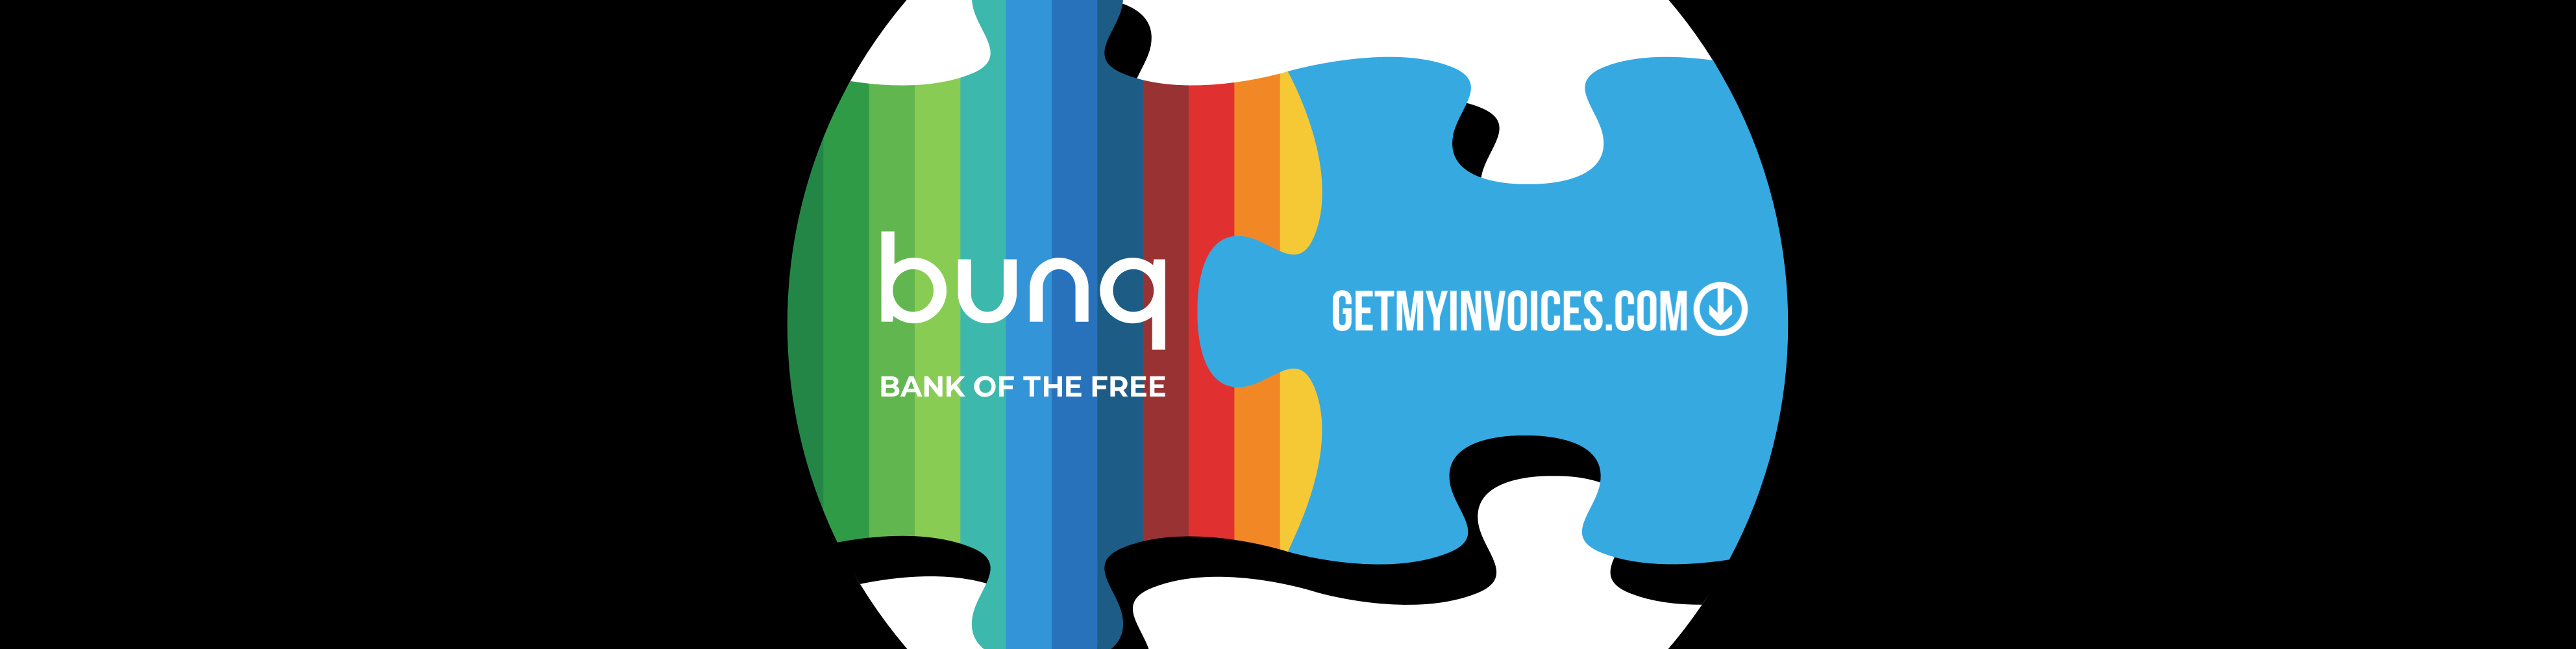 Pieces of puzzle, one with bunq logo one with getmyinvoices logo